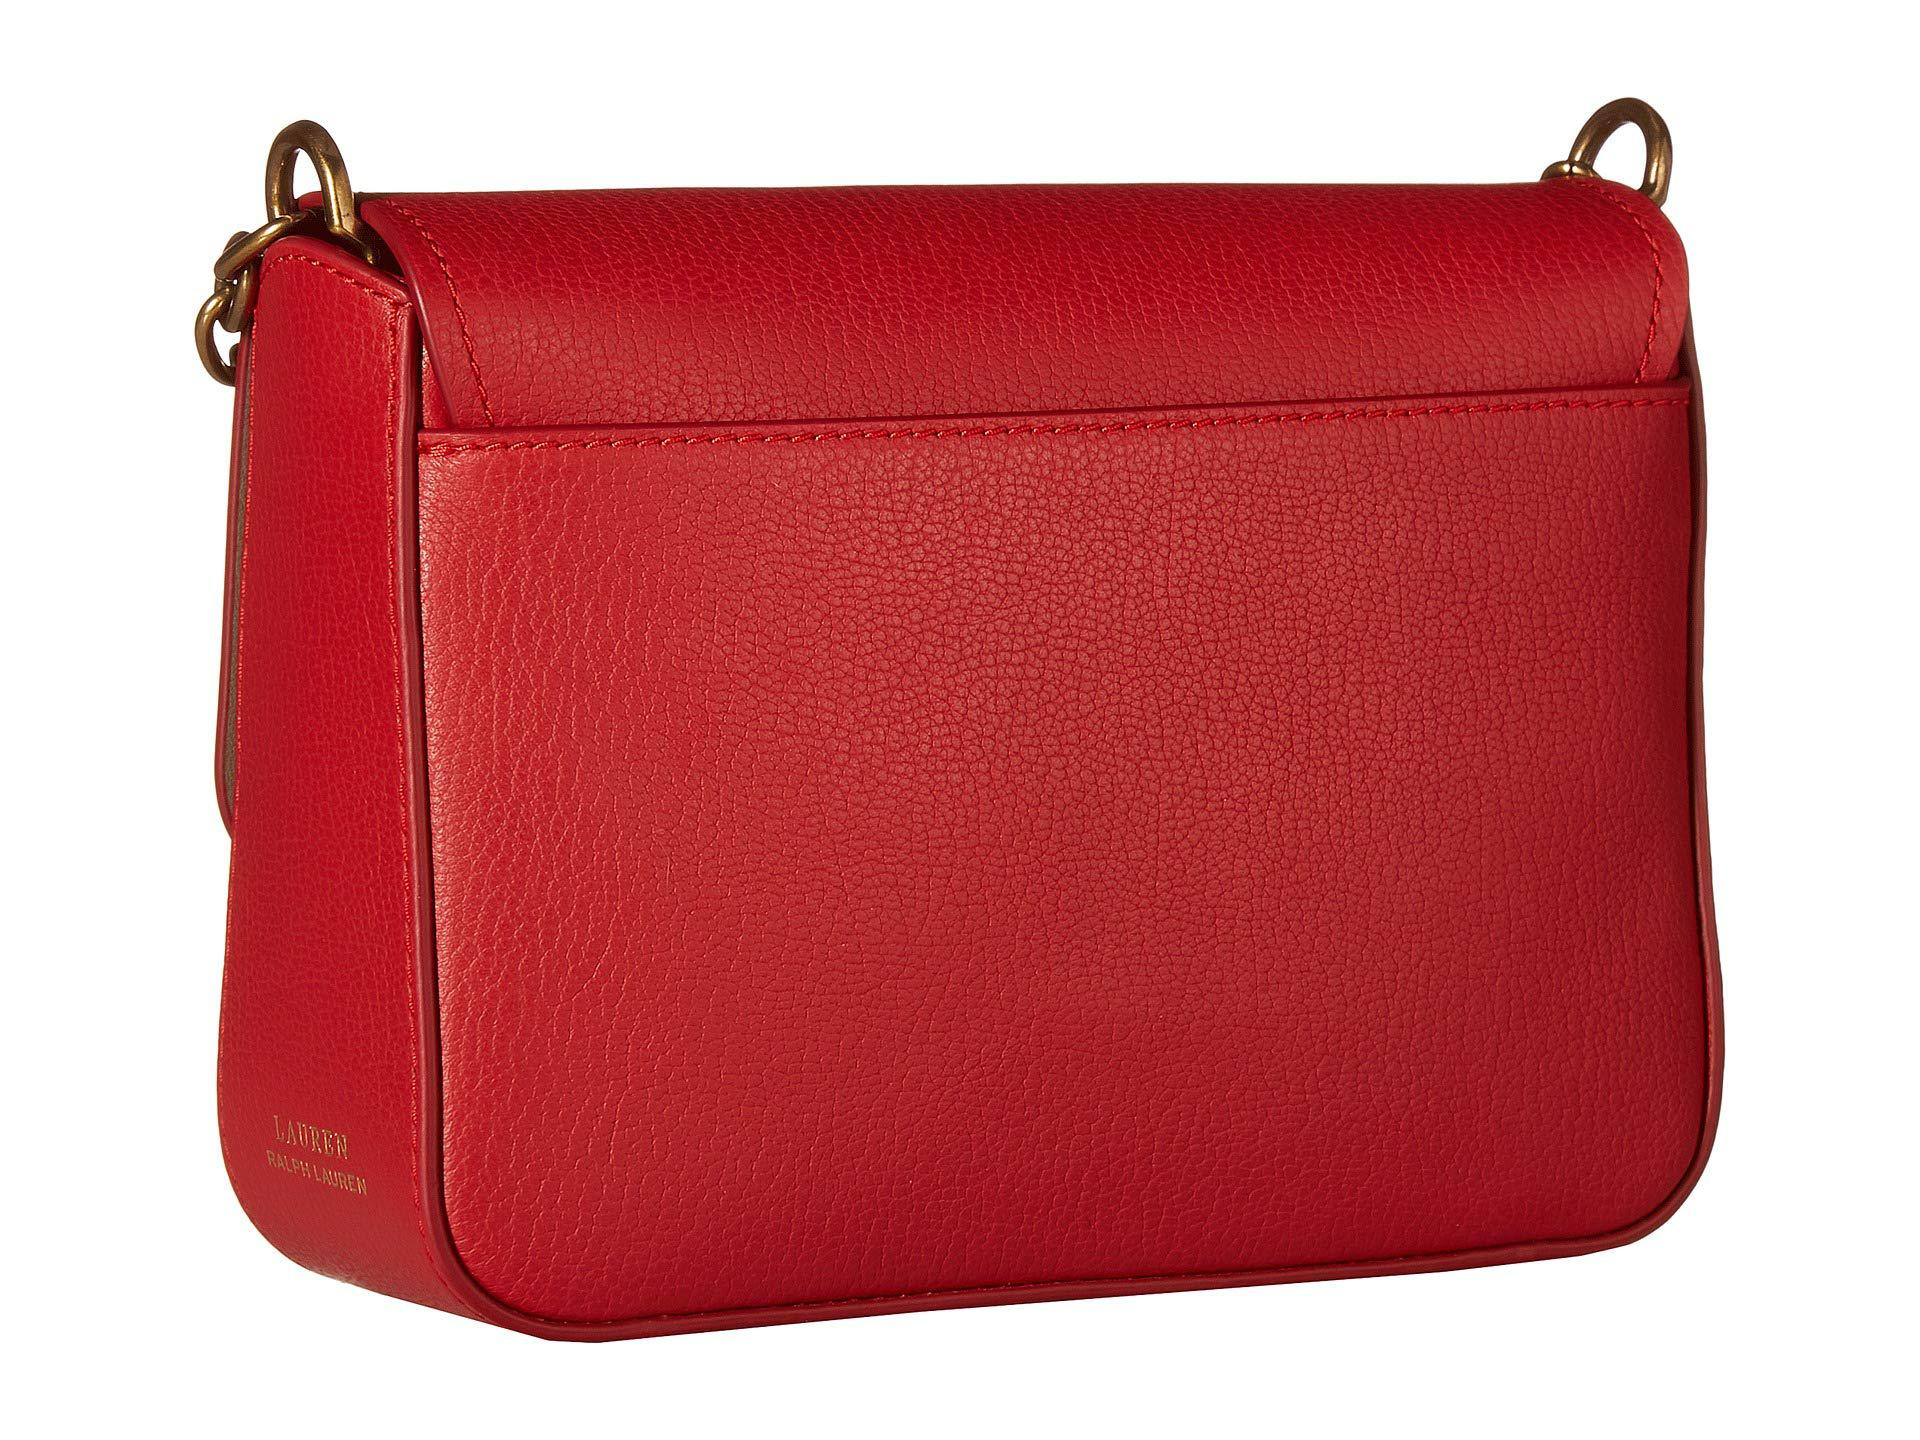 0aacbe3926 Lauren by Ralph Lauren - Red Millbrook Chain Crossbody Small - Lyst. View  fullscreen